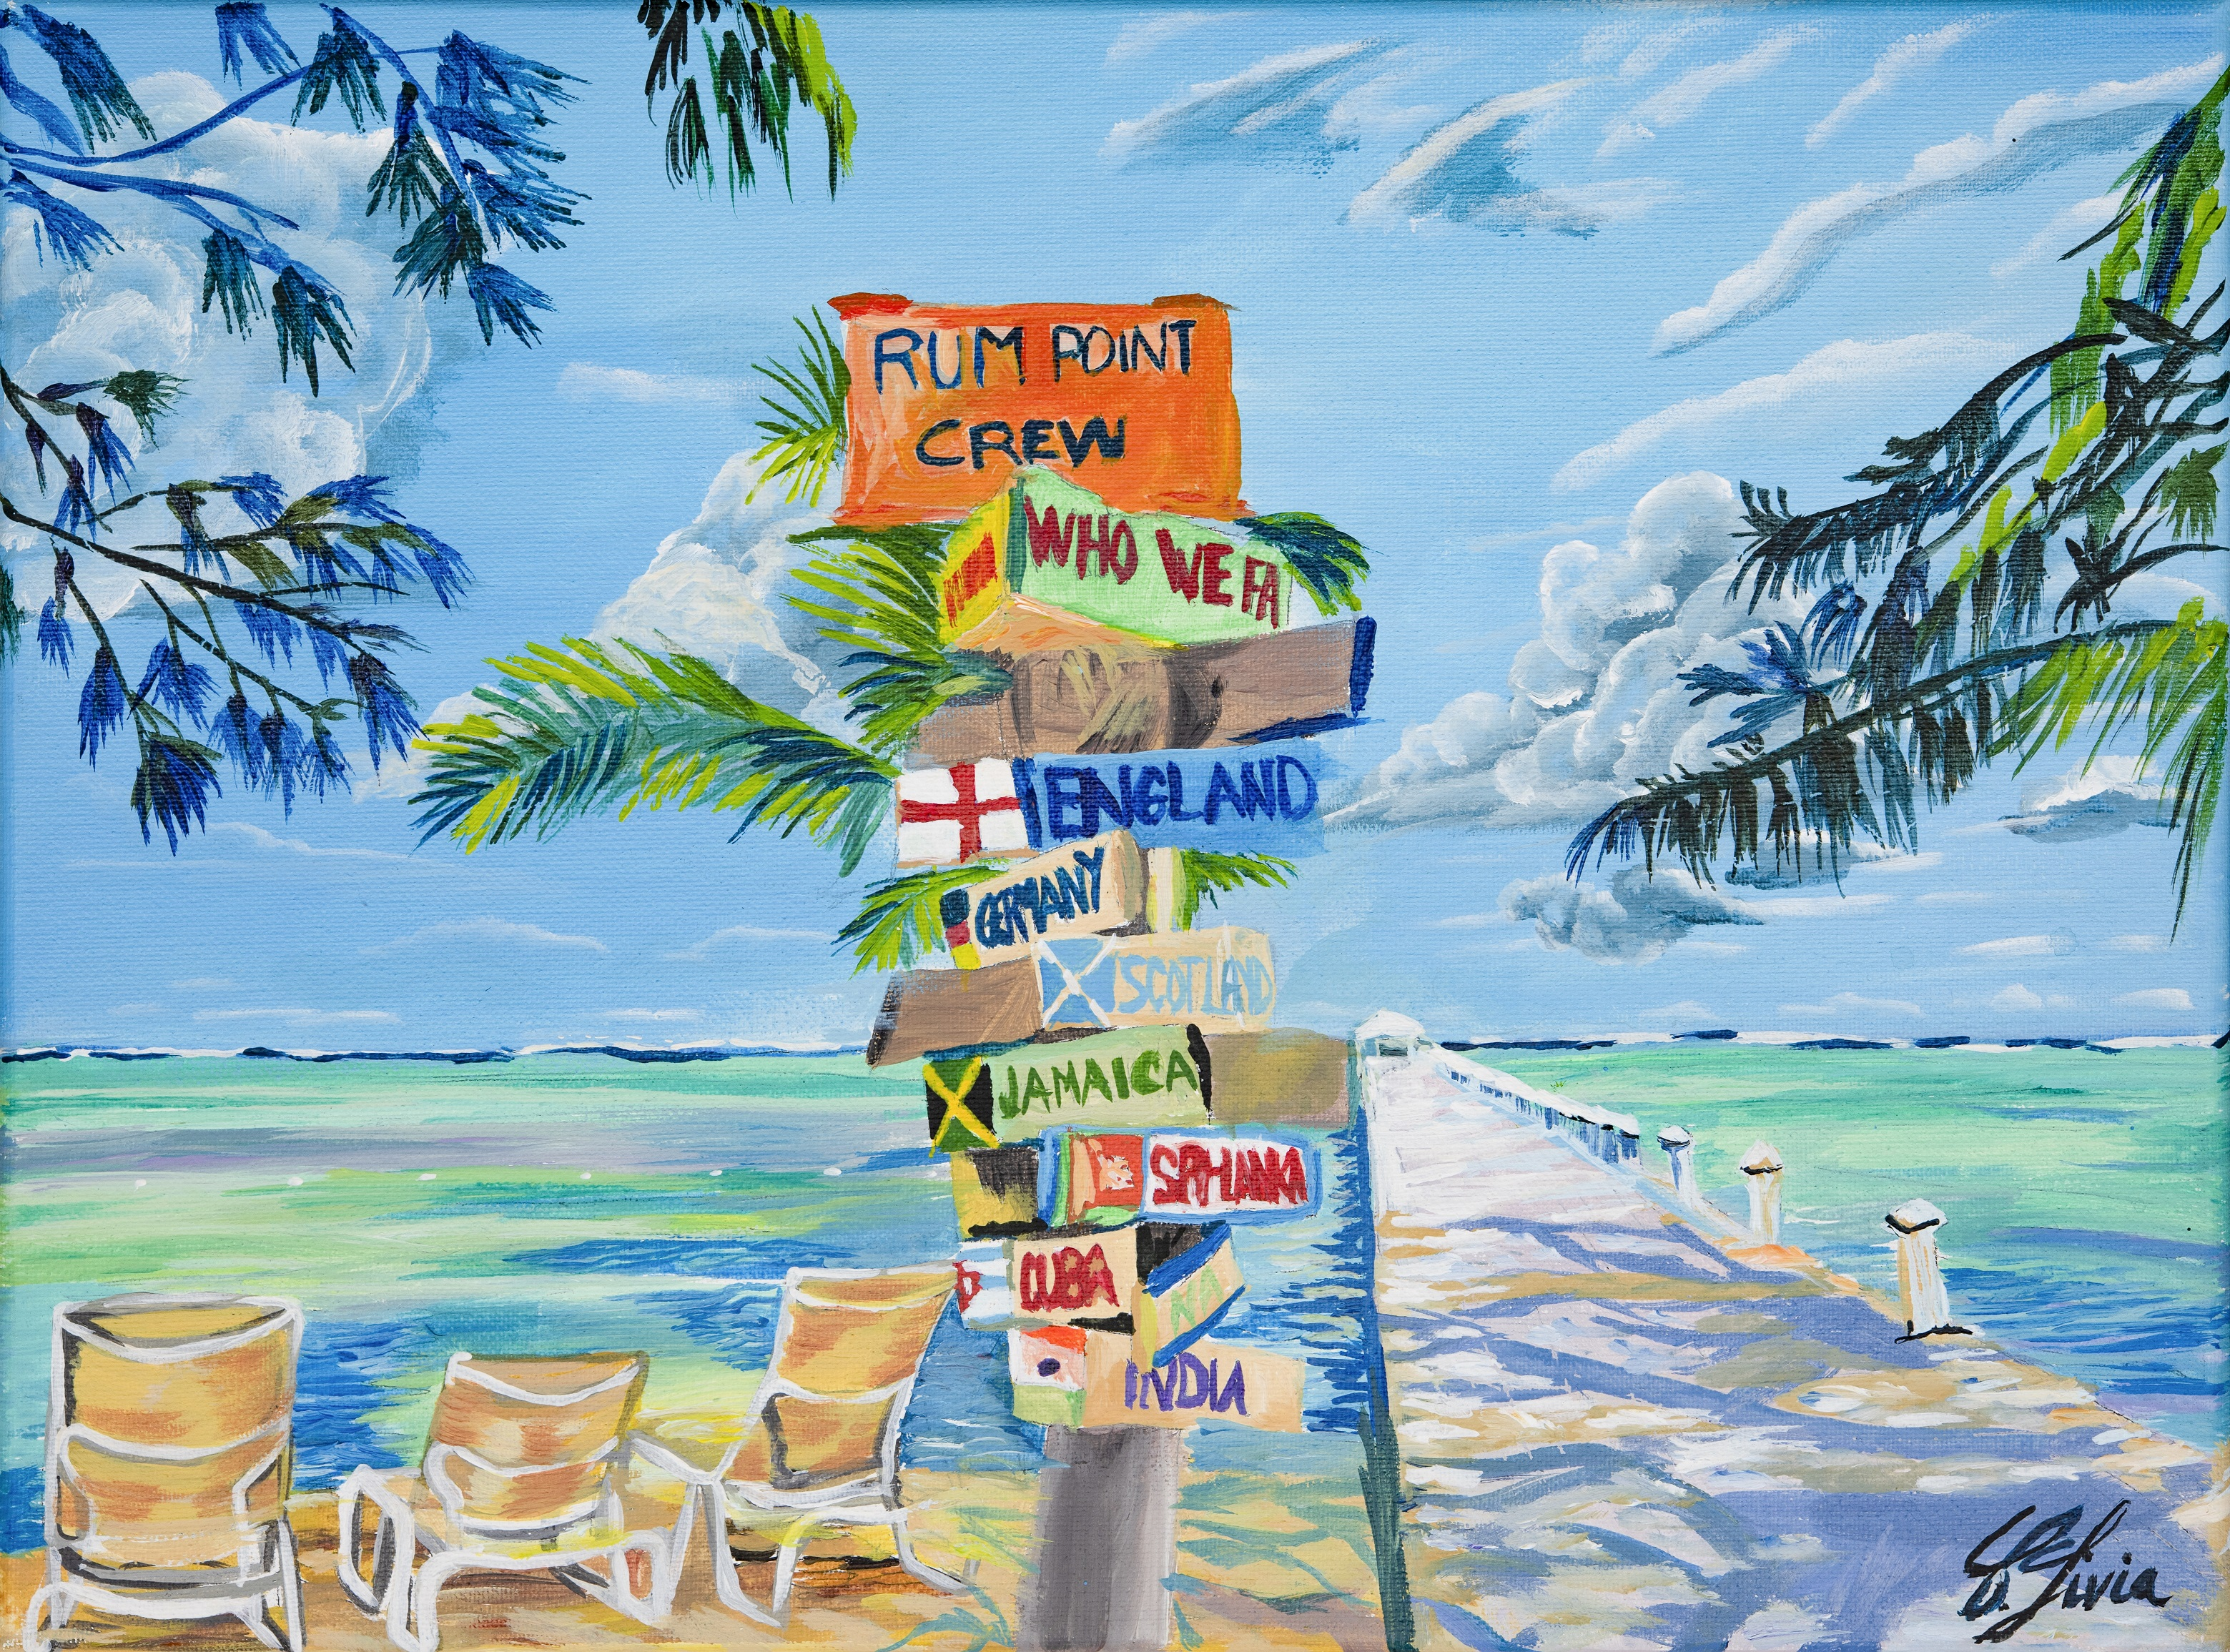 Rum Point Cayman Islands artwork by Livia Constantinescu - art listed for sale on Artplode